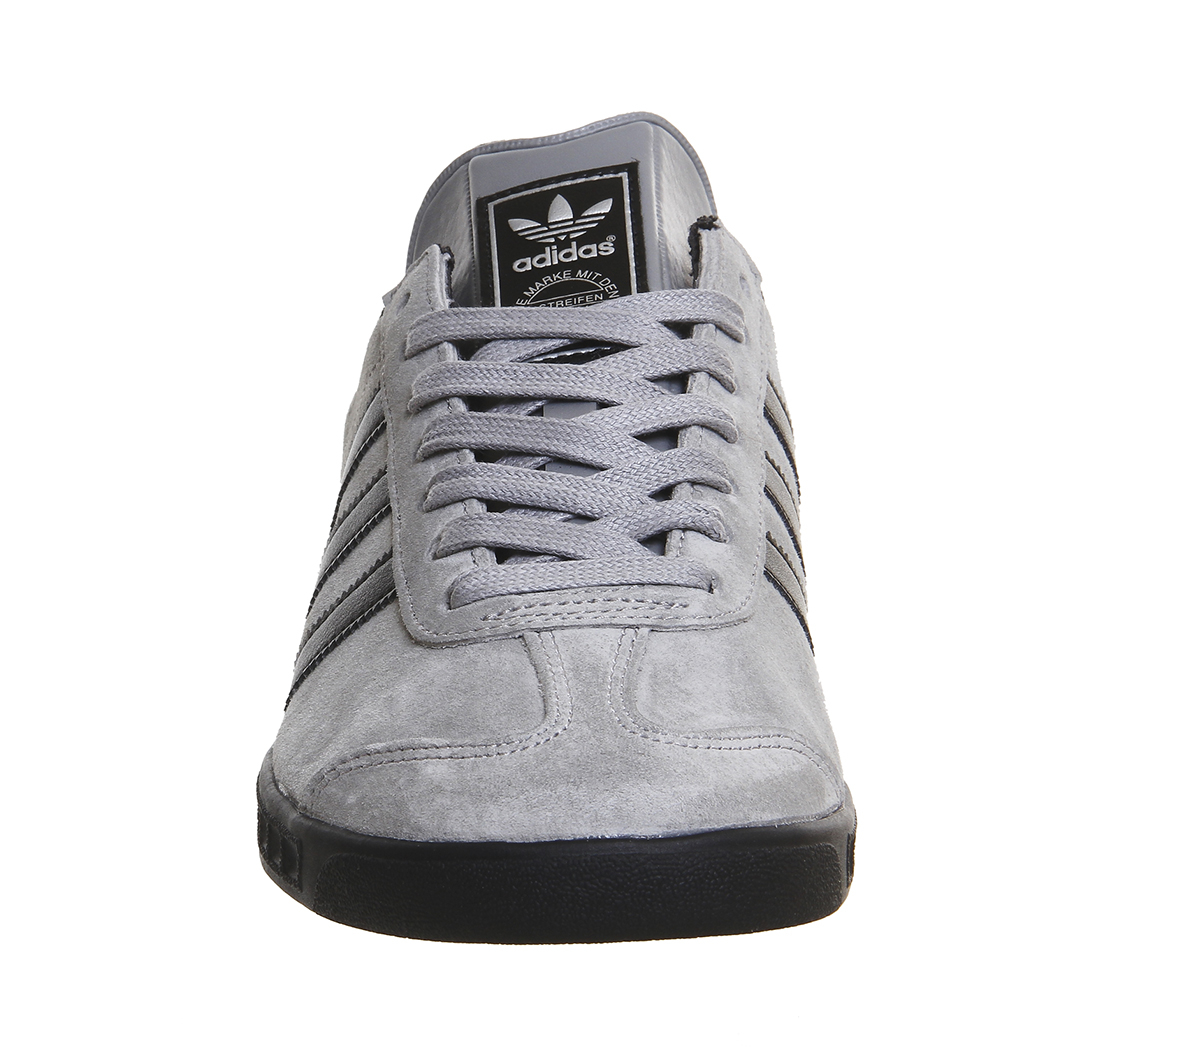 adidas Originals Hamburg Suede and Leather Low-Top Sneakers in Grey (Grey) for Men